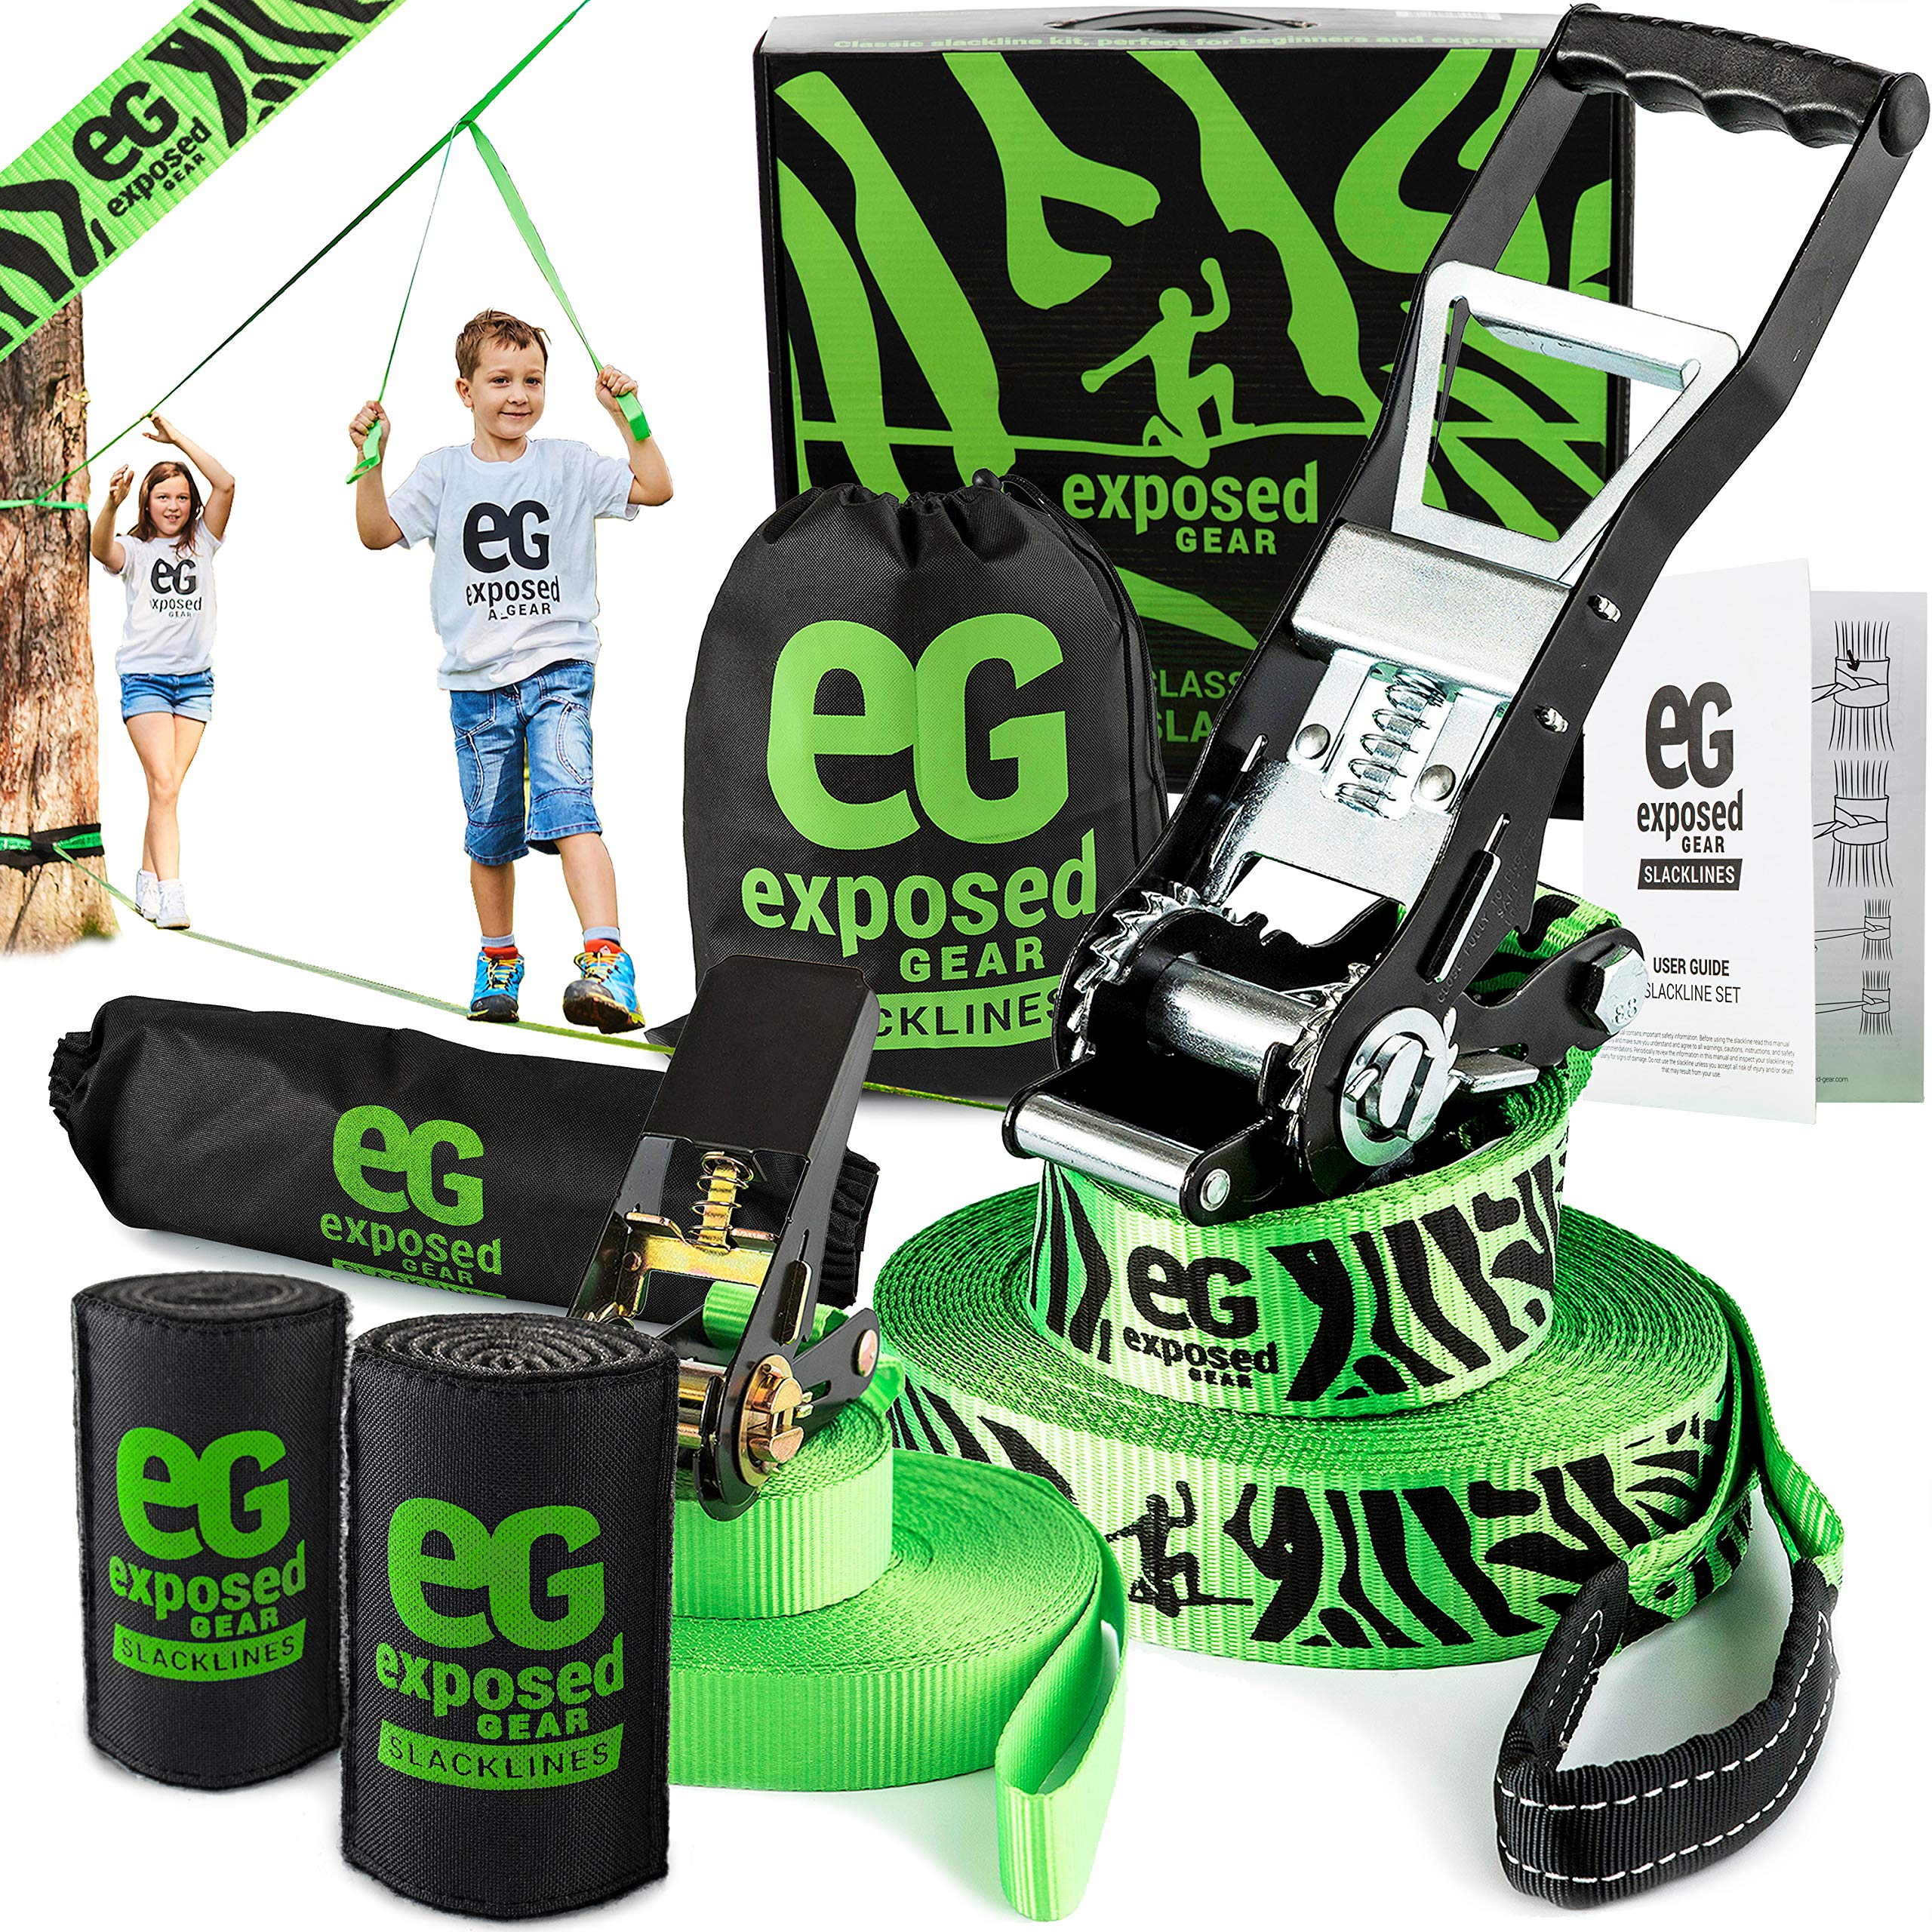 Slackline Kit 60ft with Training Line Tree Protectors High Grade Ratchet + Cover Arm Trainer Set Up Instruction Booklet and Carry Bag | Complete Slack Line Set | Perfect Slackline For Kids and Adults by Exposed Gear